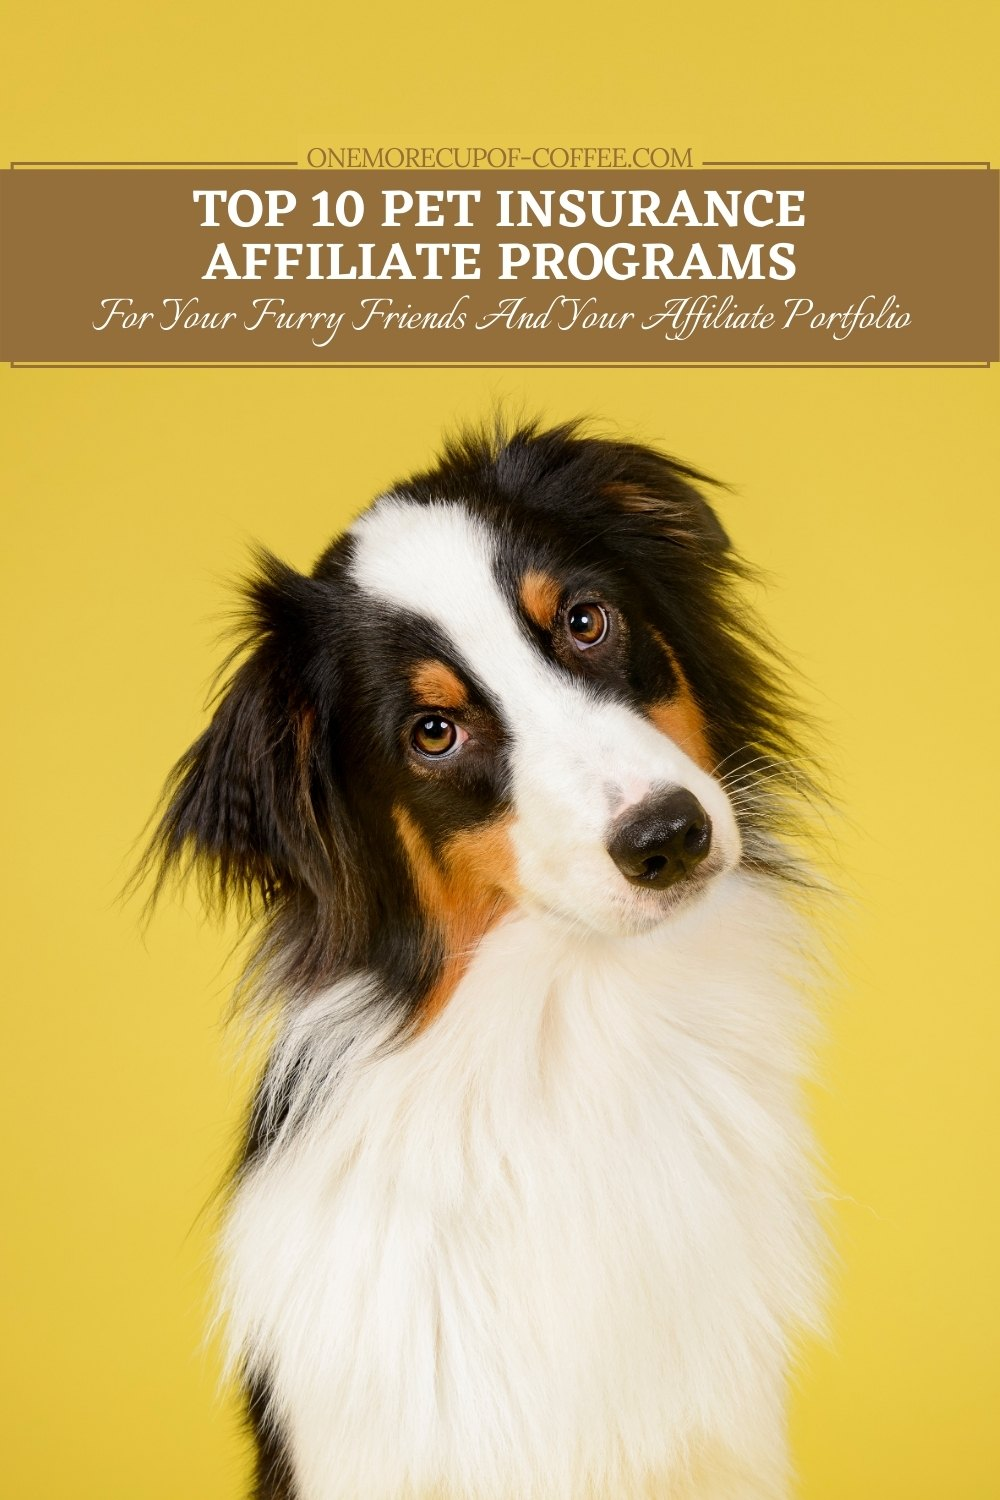 closeup image of a collie dog against a yellow background with text overlay